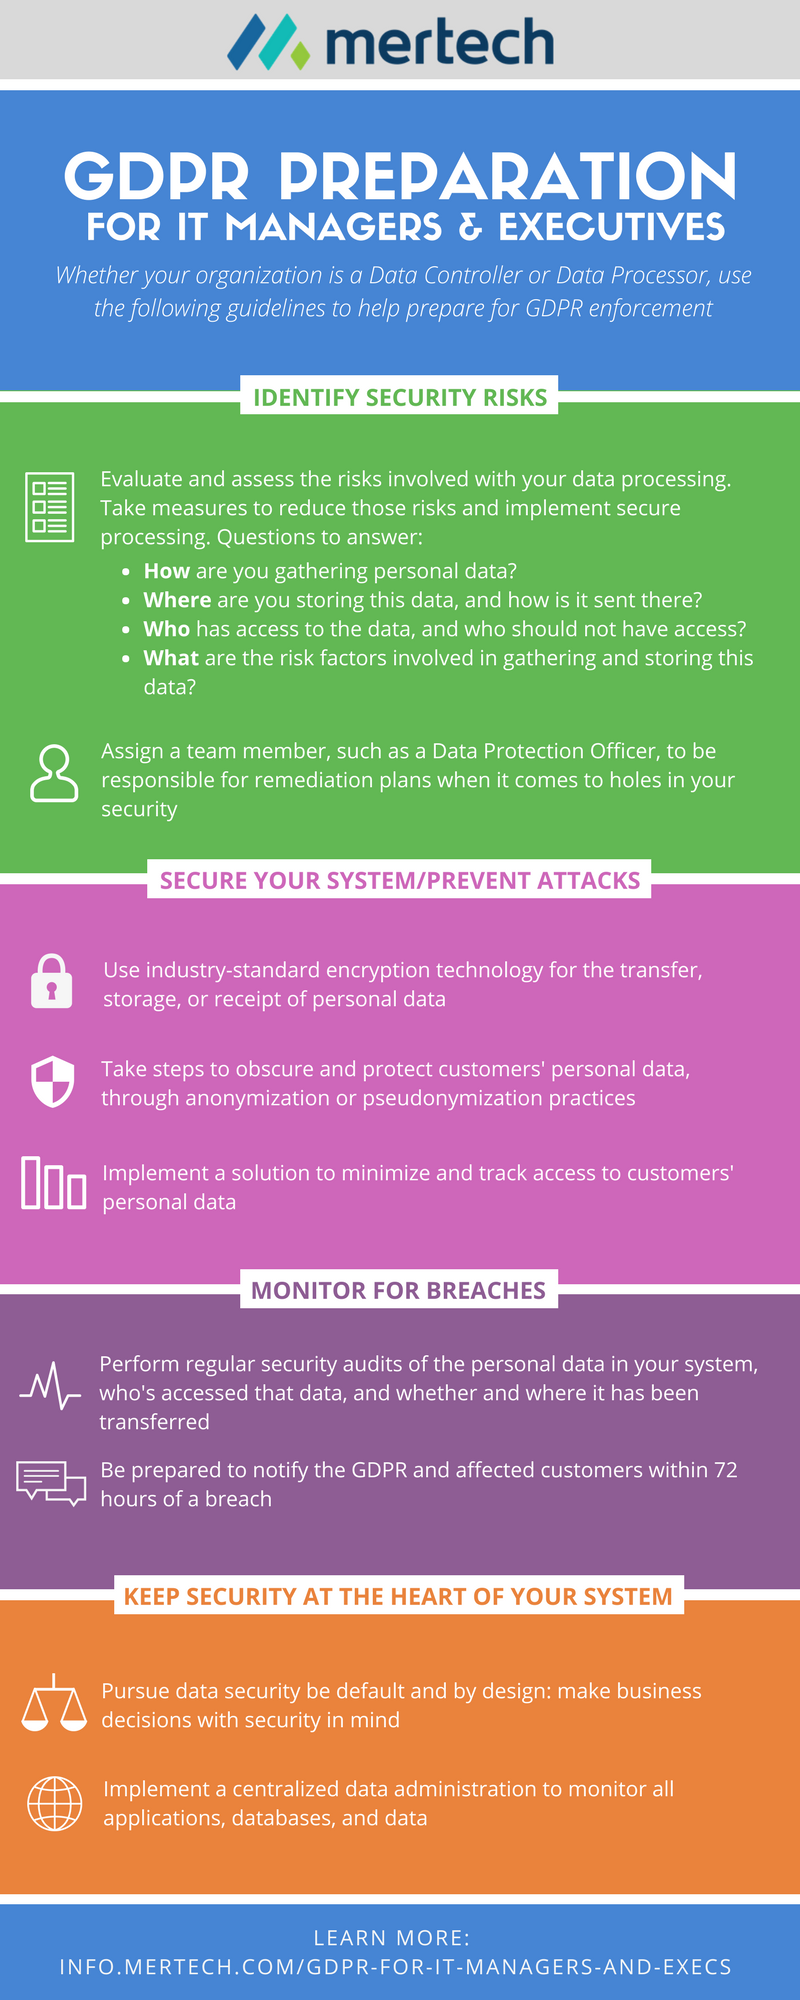 GDPR Preparation Checklist for IT Managers and Executives